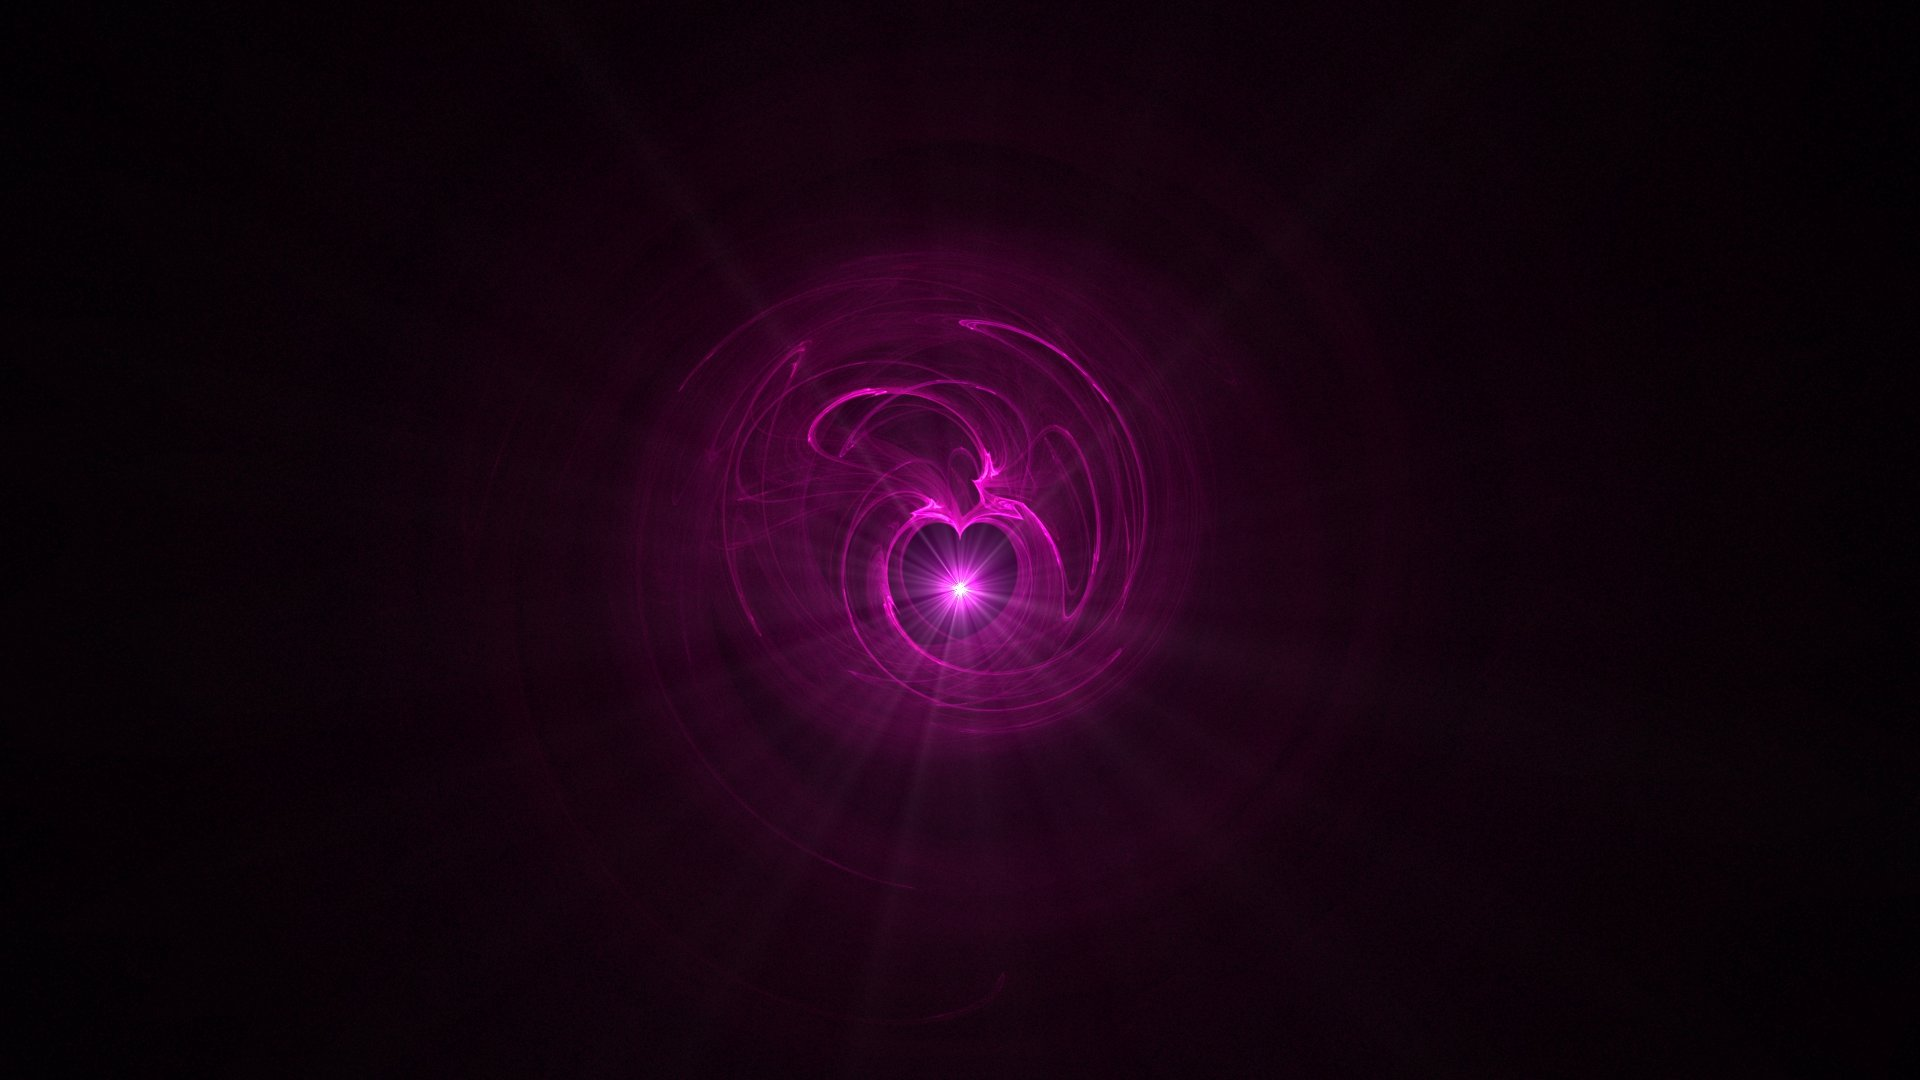 High resolution Pink color full hd 1920x1080 background ID:145498 for desktop